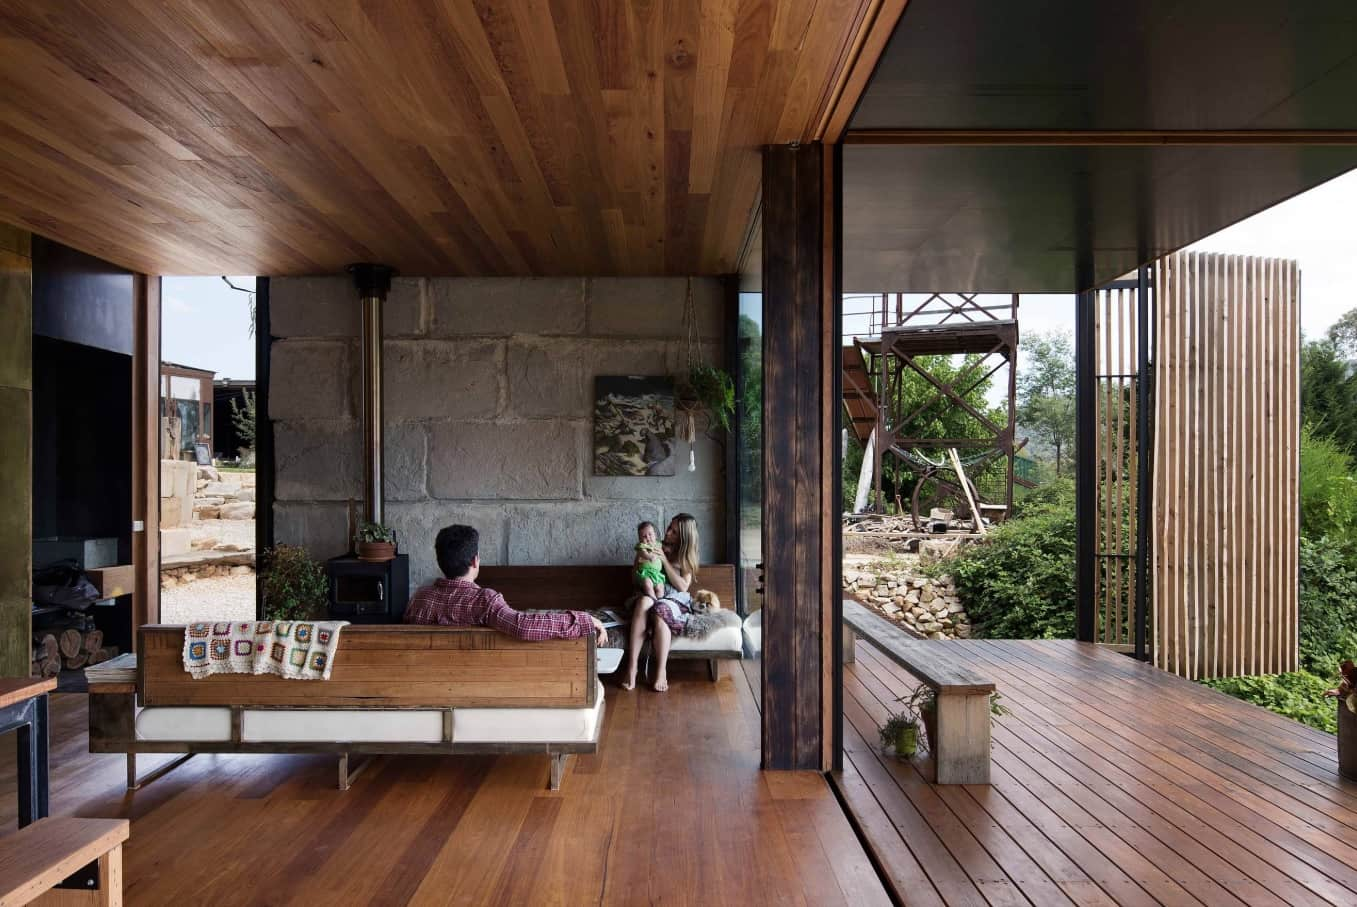 Stylish and Effective Sustainable House Designs to Inspire. Totally open house of all-natural materials